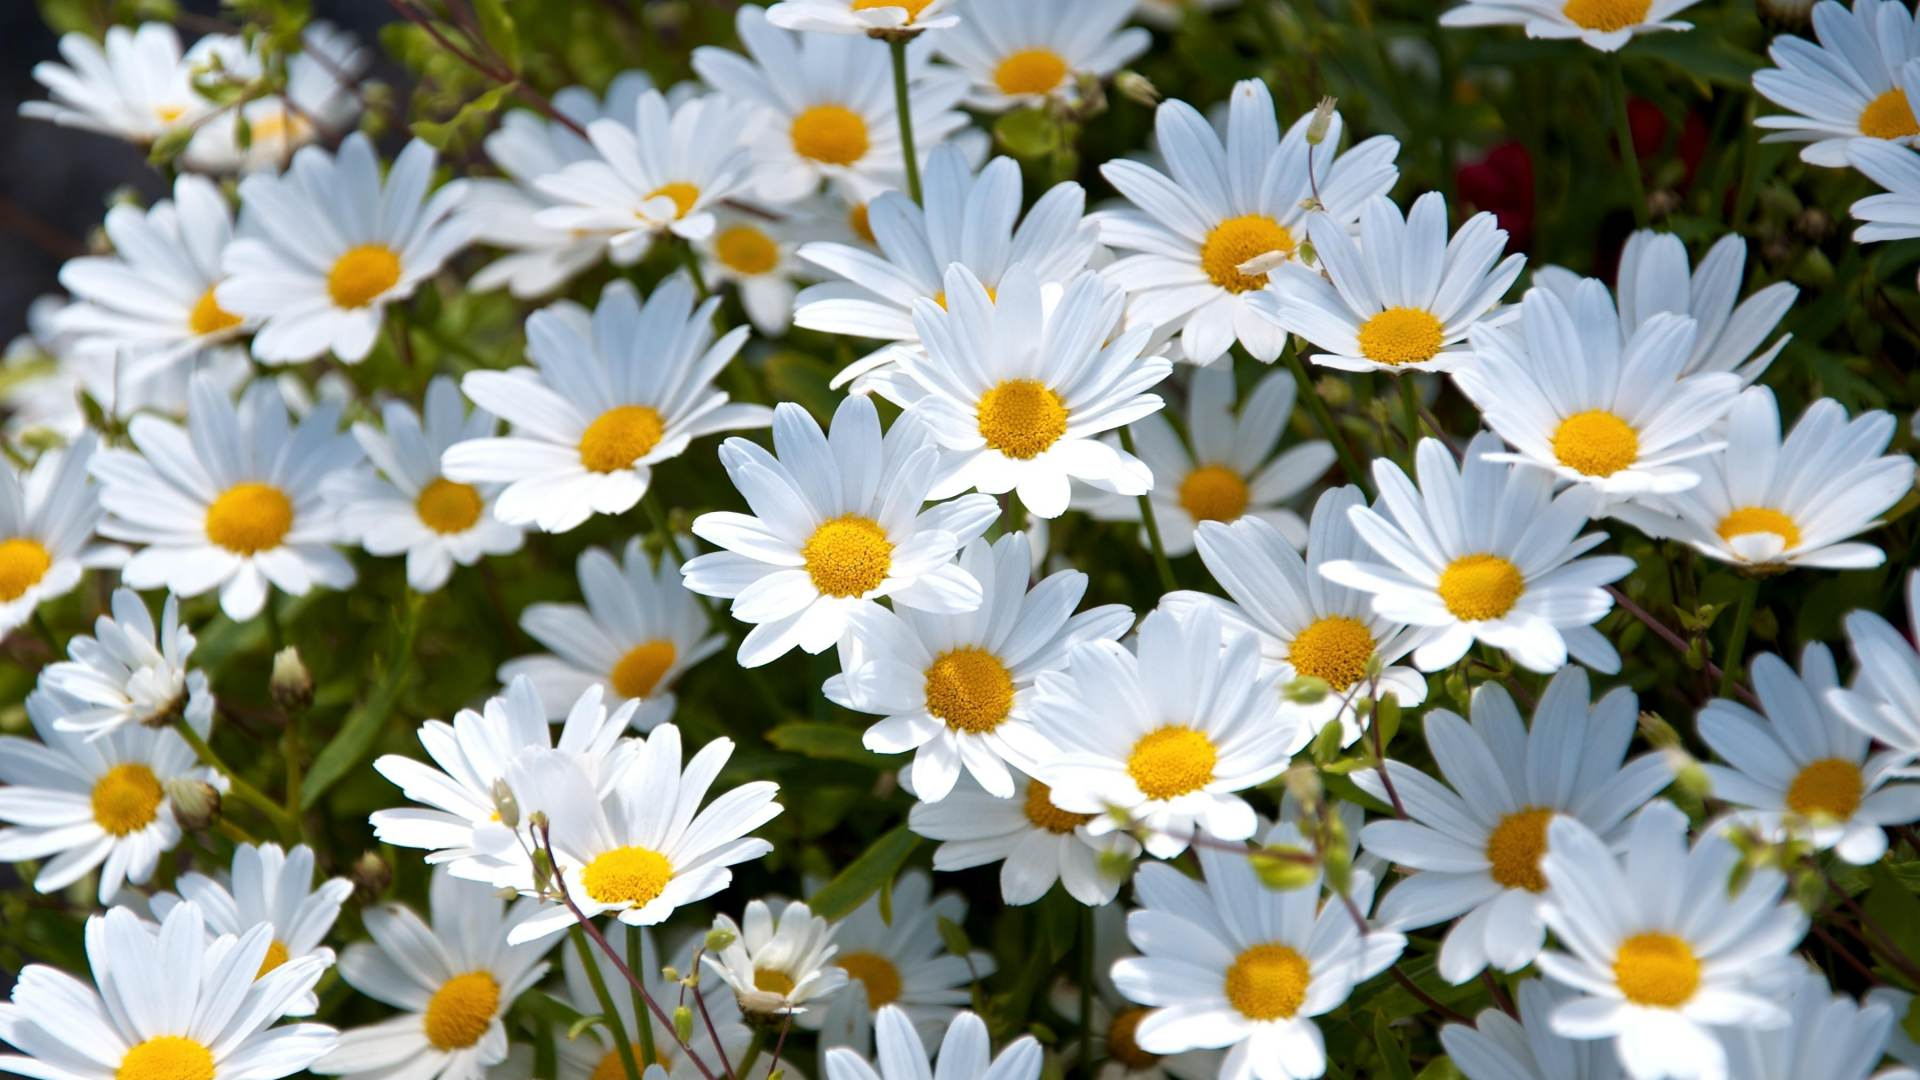 Coll White Daisy Flowers Background